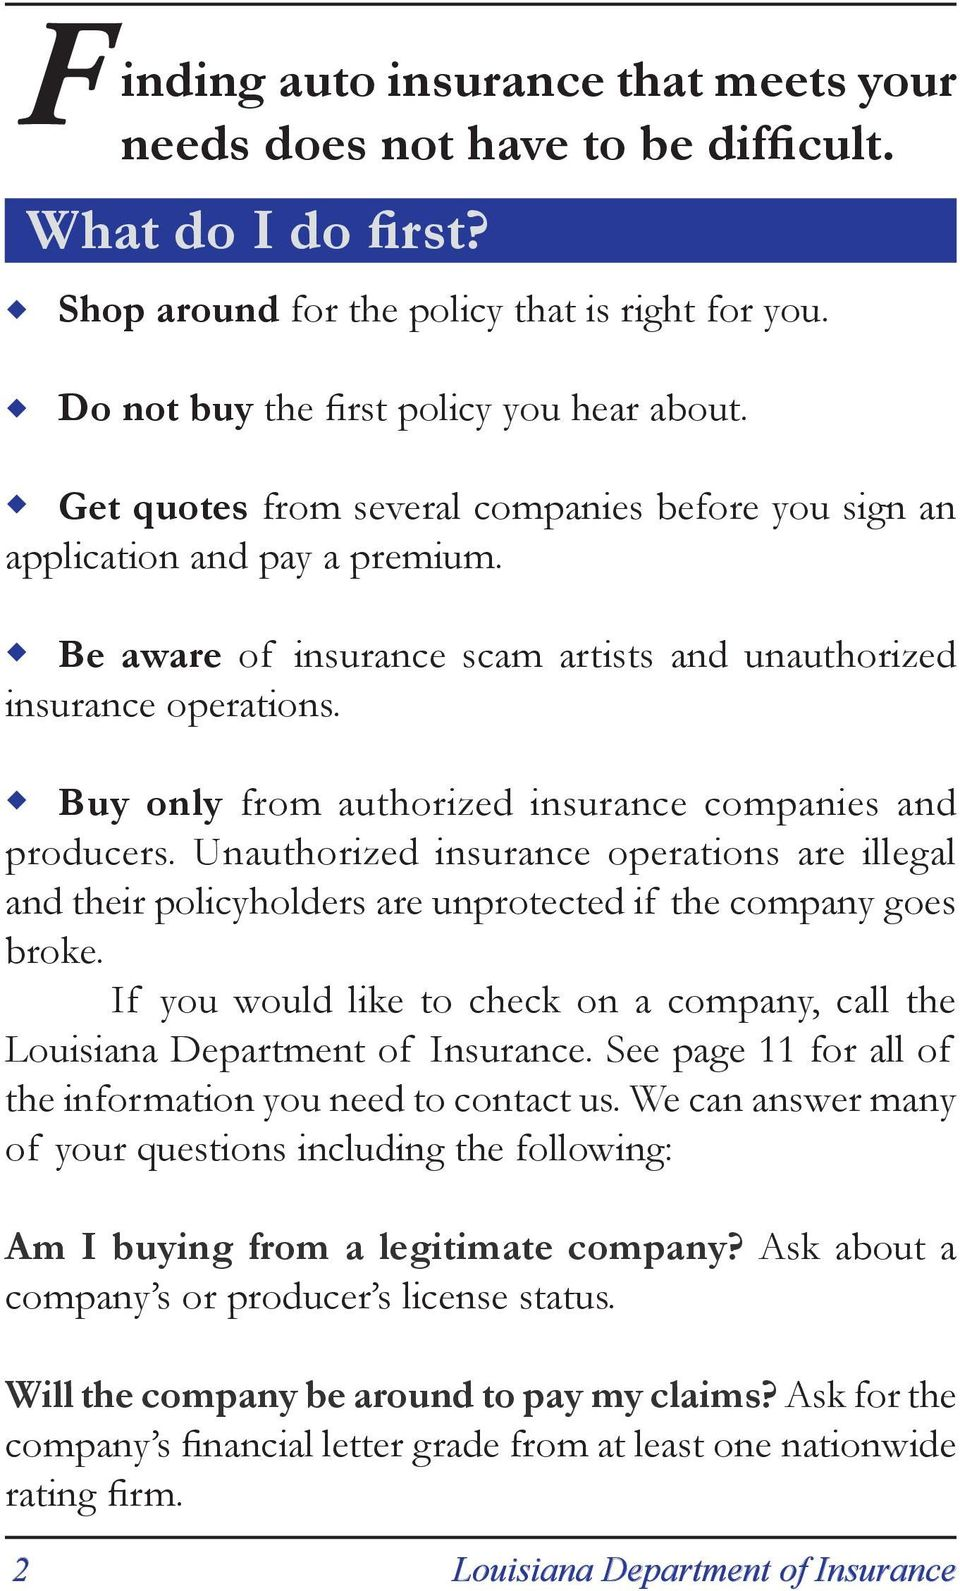 Buy only from authorized insurance companies and producers. Unauthorized insurance operations are illegal and their policyholders are unprotected if the company goes broke.